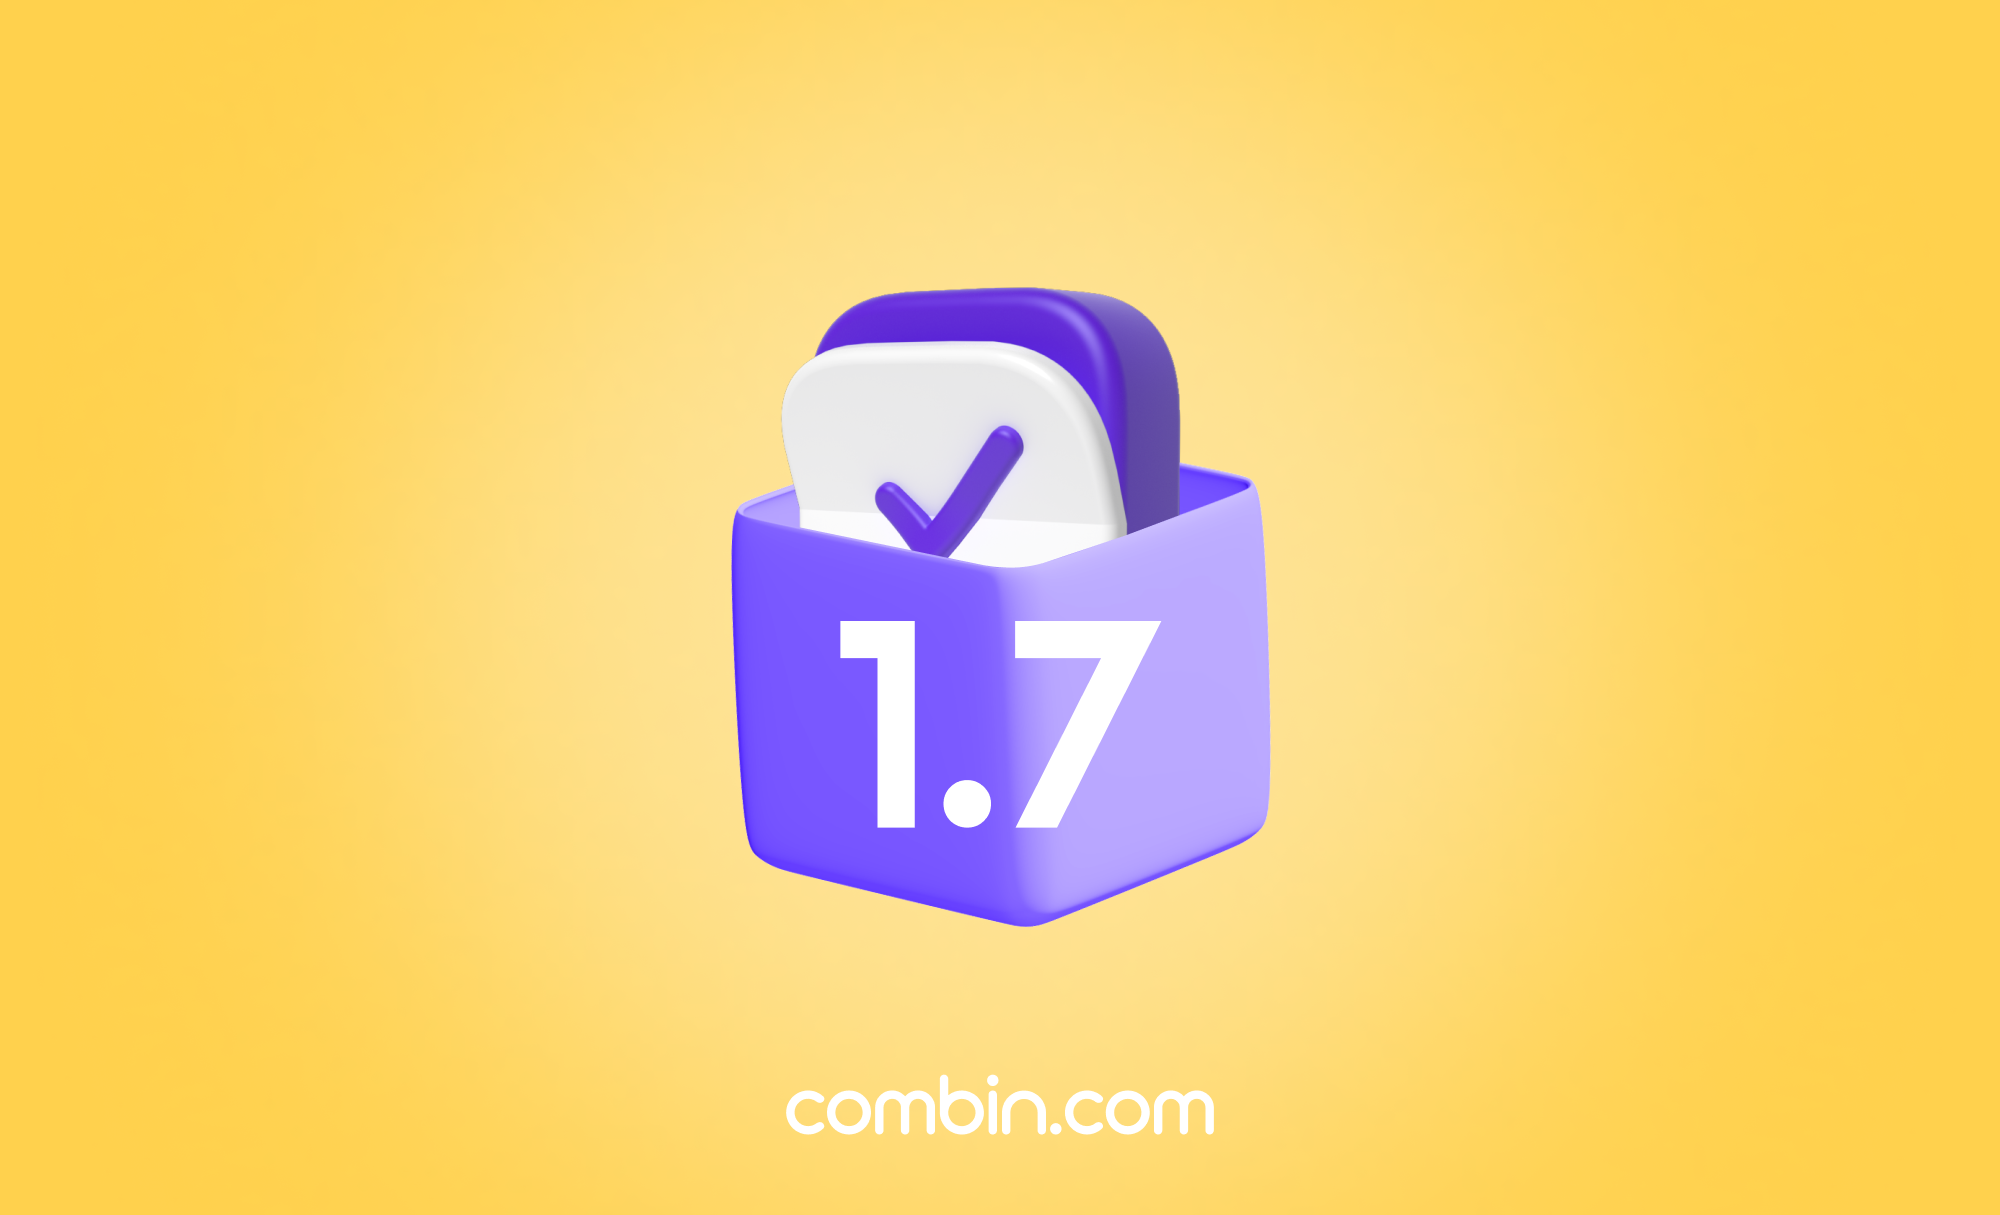 Combin Scheduler 1.7: Post Now Option, Fonts Change And More